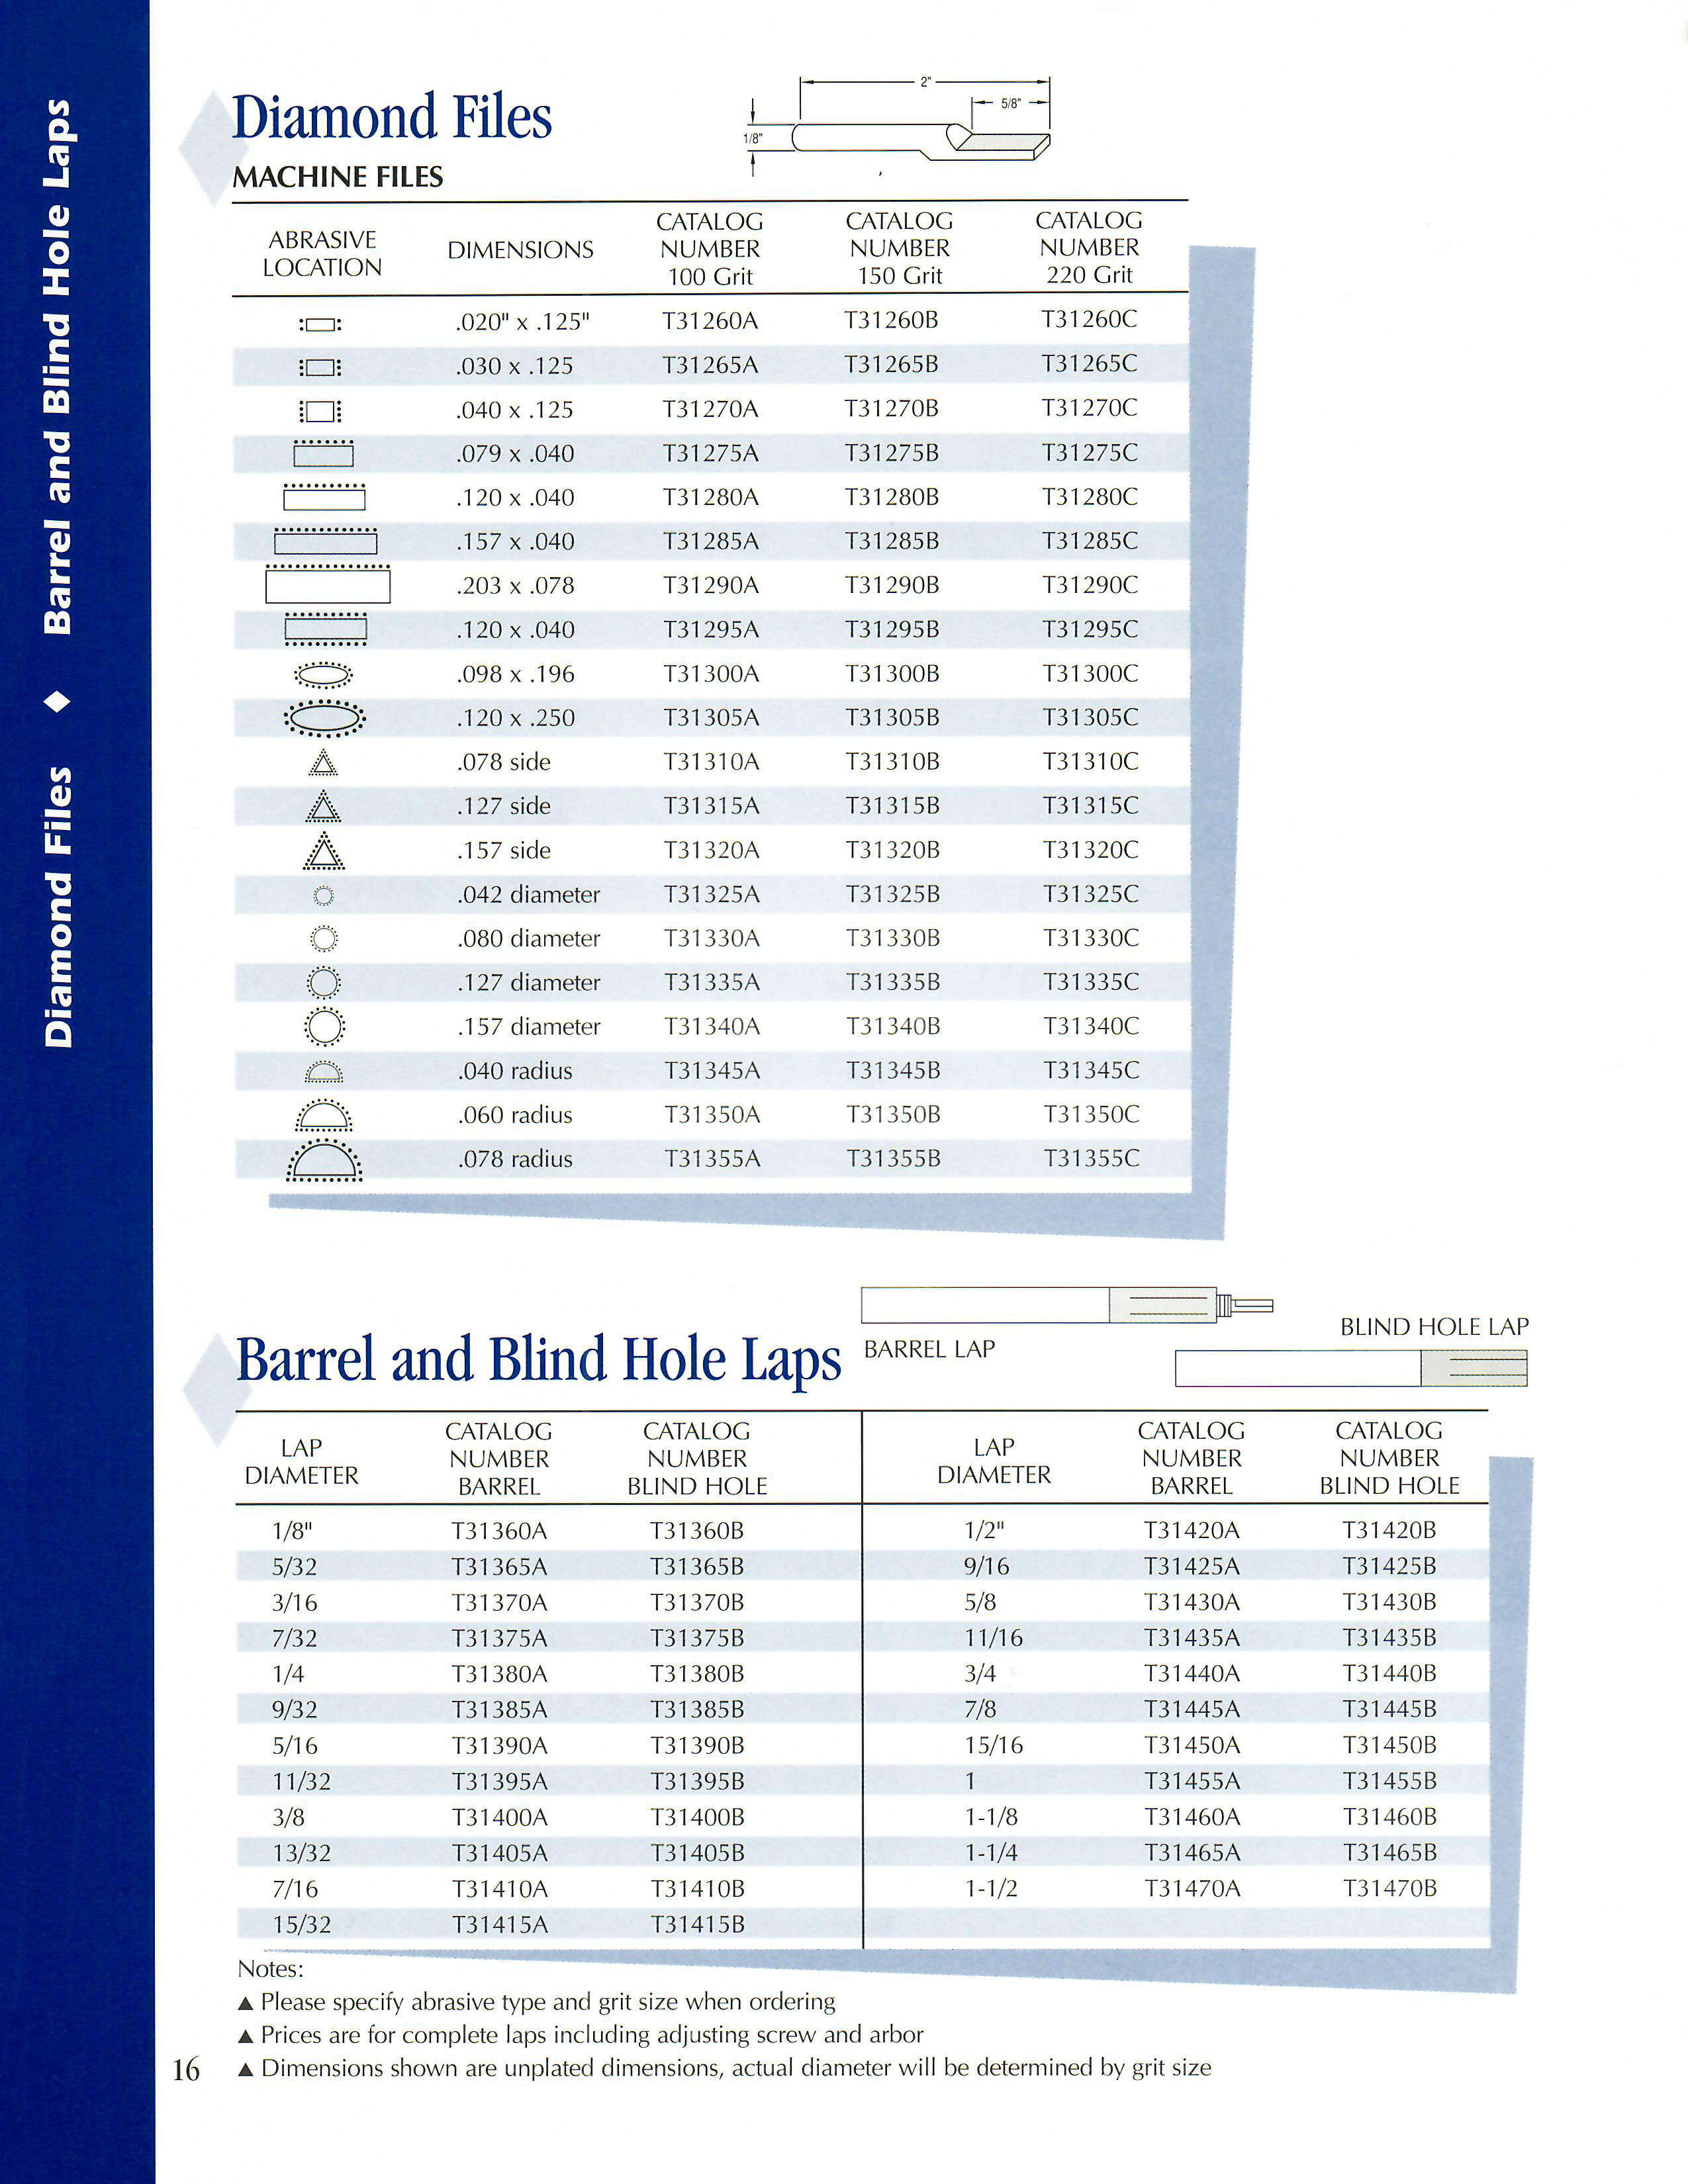 catalog-in-pdf-combined-page-16-image-0001.jpg